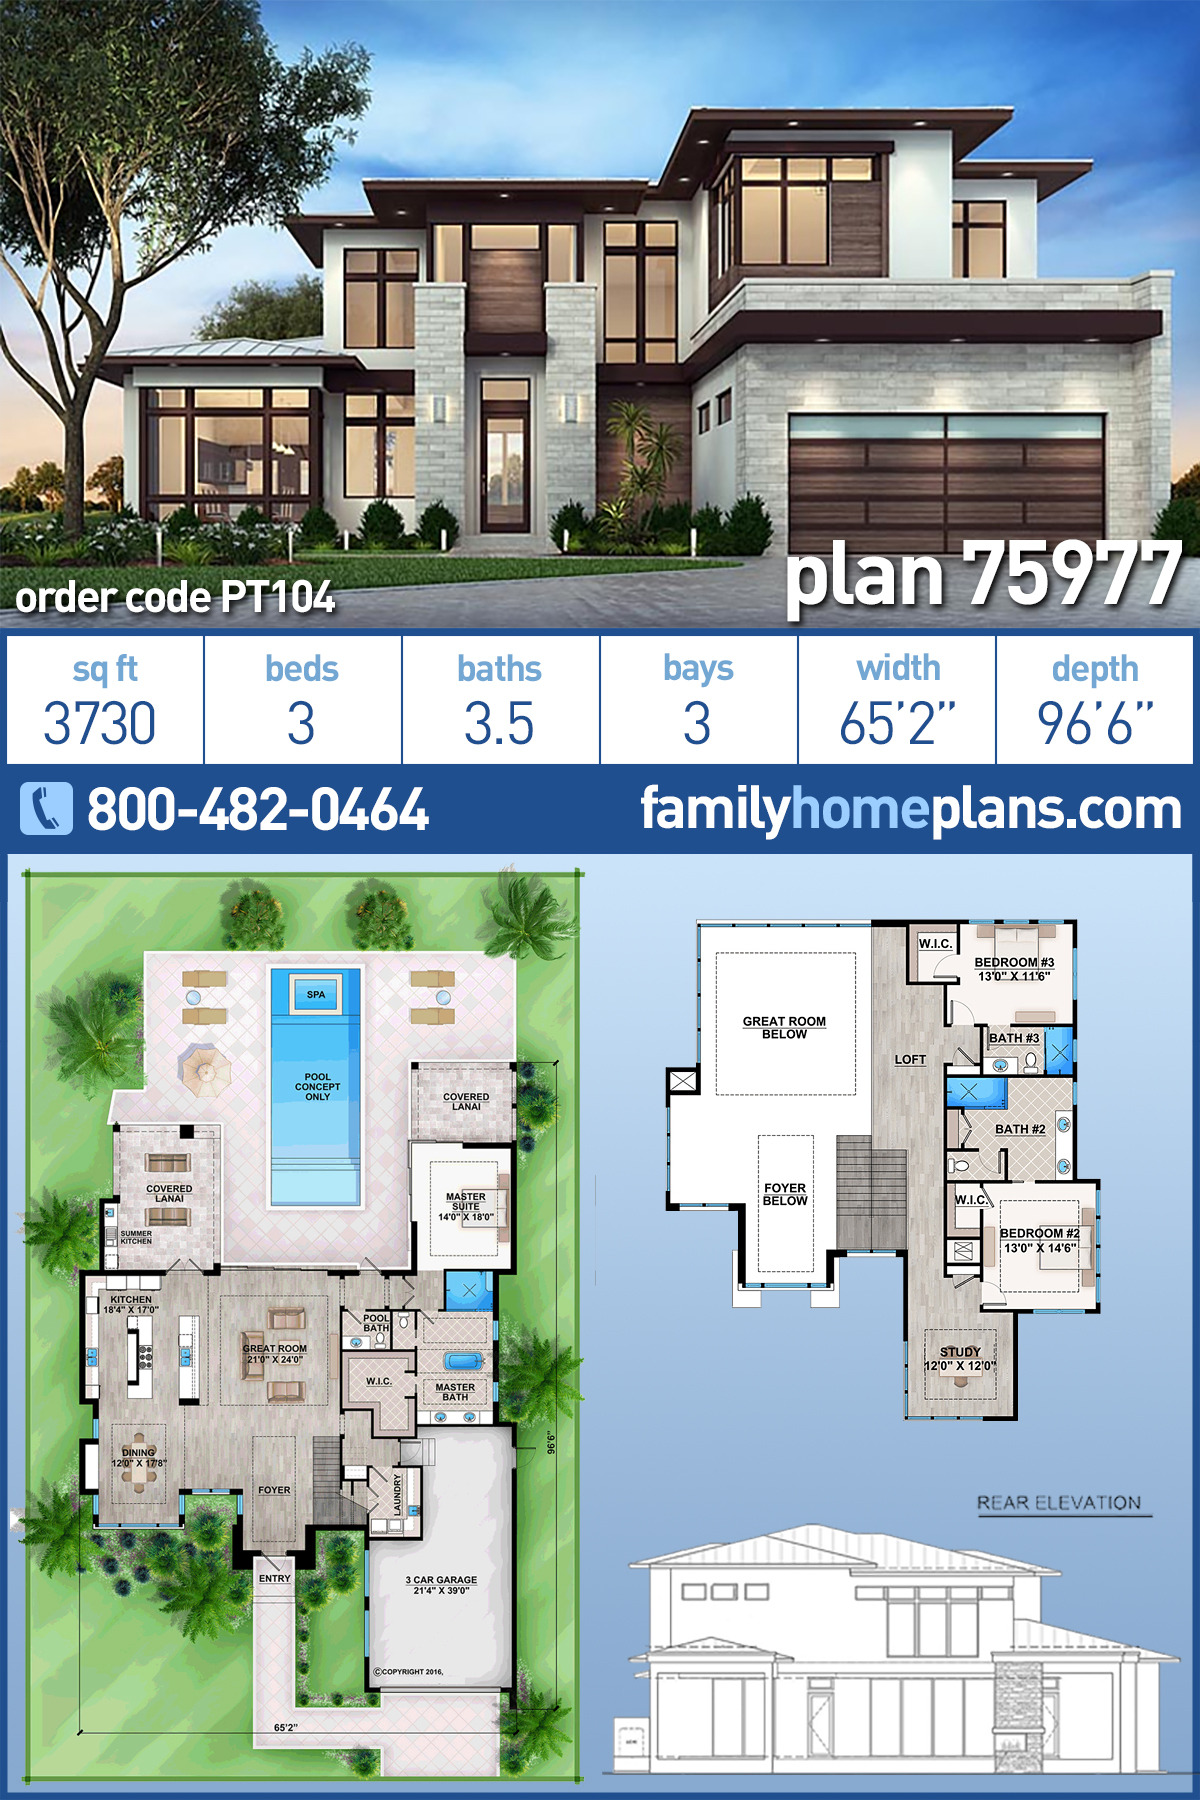 Contemporary House Plans for Sale Luxury Modern Style House Plan with 3 Bed 4 Bath 3 Car Garage